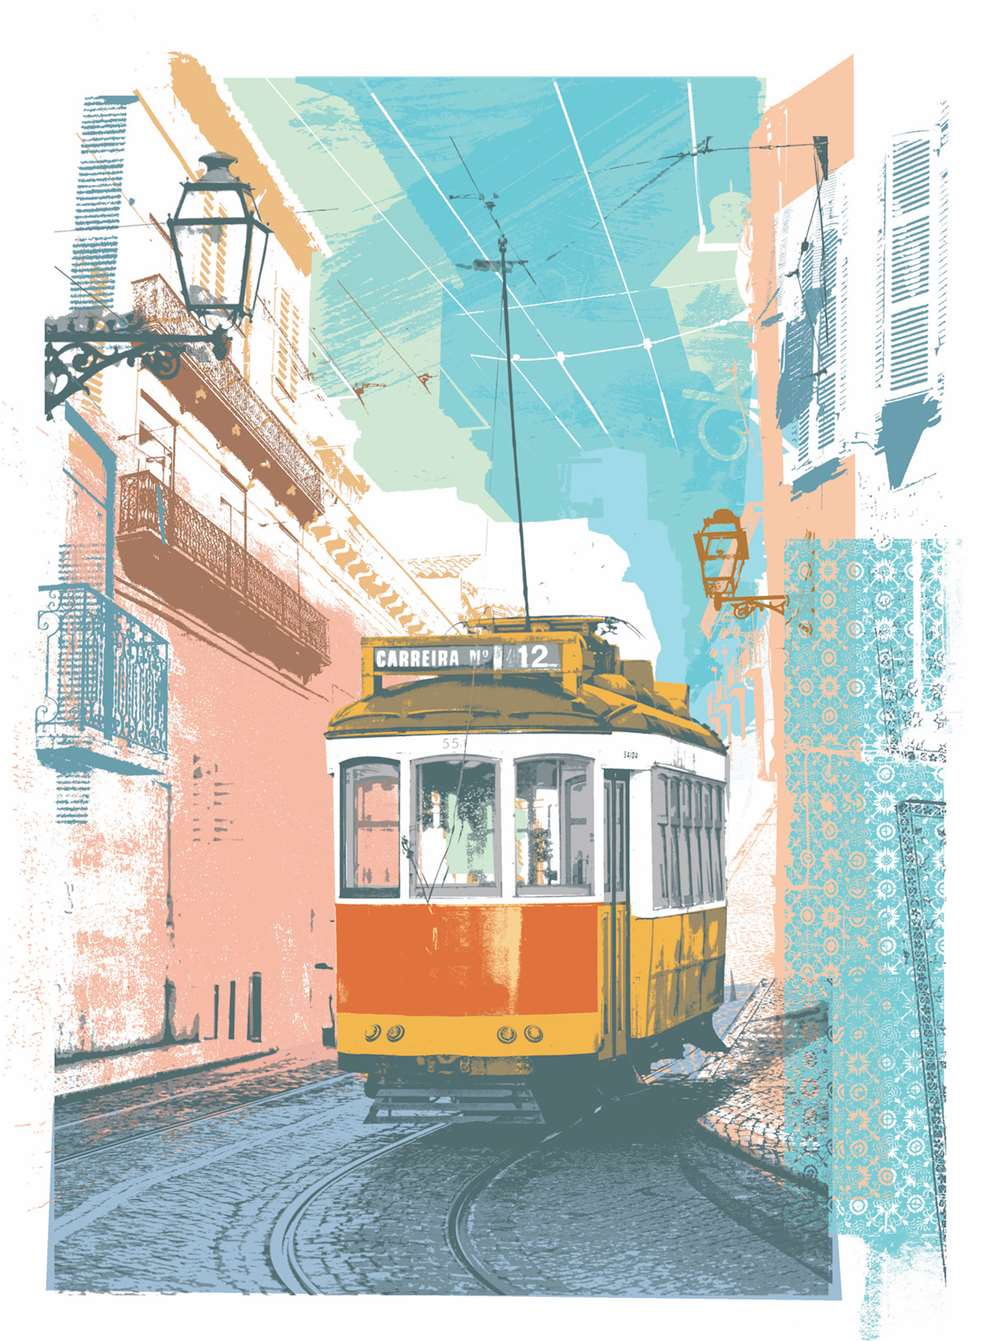 Kate Miller, hand sketch illustration using collage and digital layers. Scene of a tram in Lisbon on a narrow street.